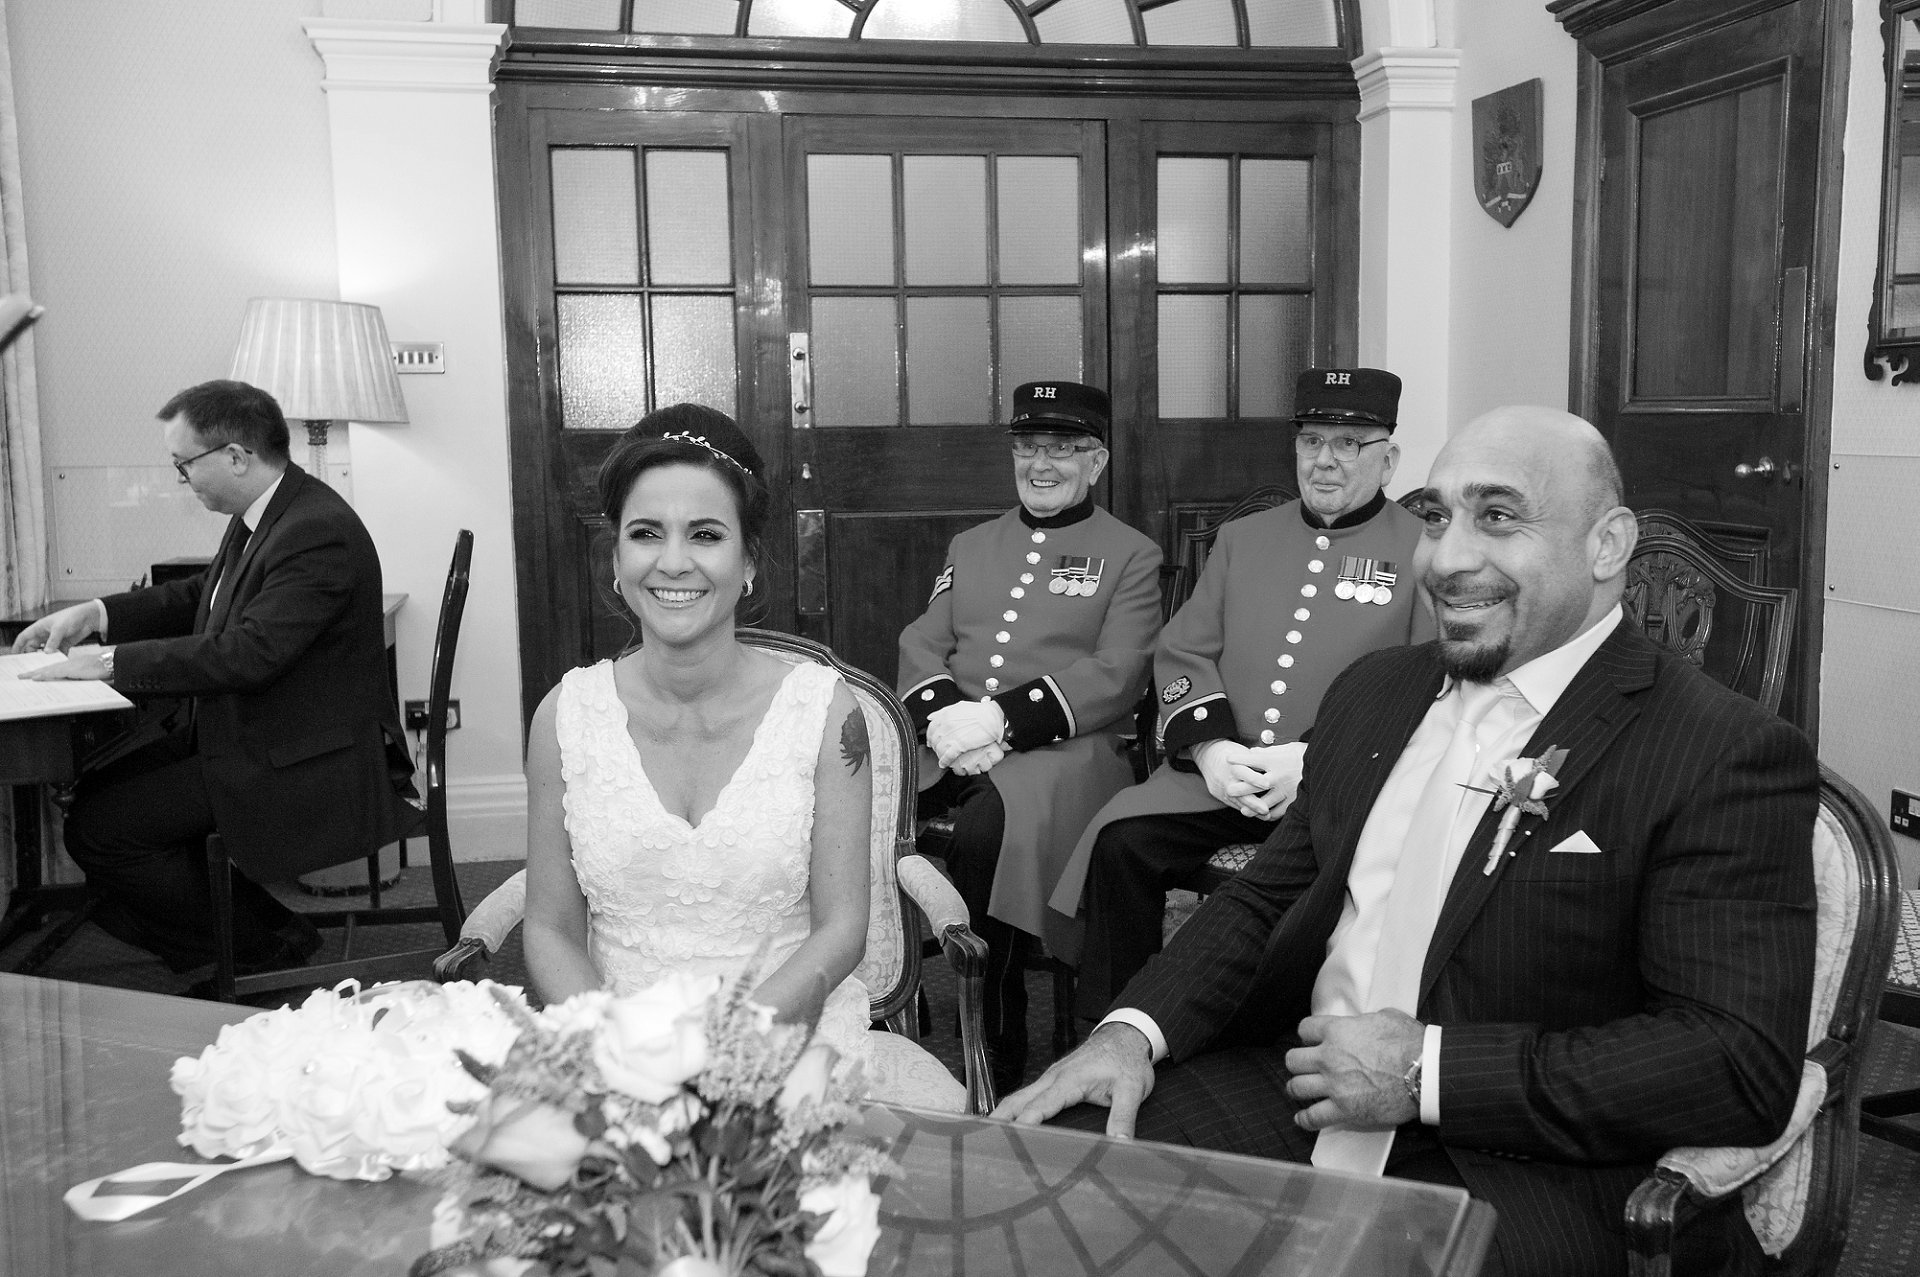 Bride & groom smiling during their wedding ceremony in the Rossetti Room at Chelsea Old Town Hall with Chelsea Pensioners looking on